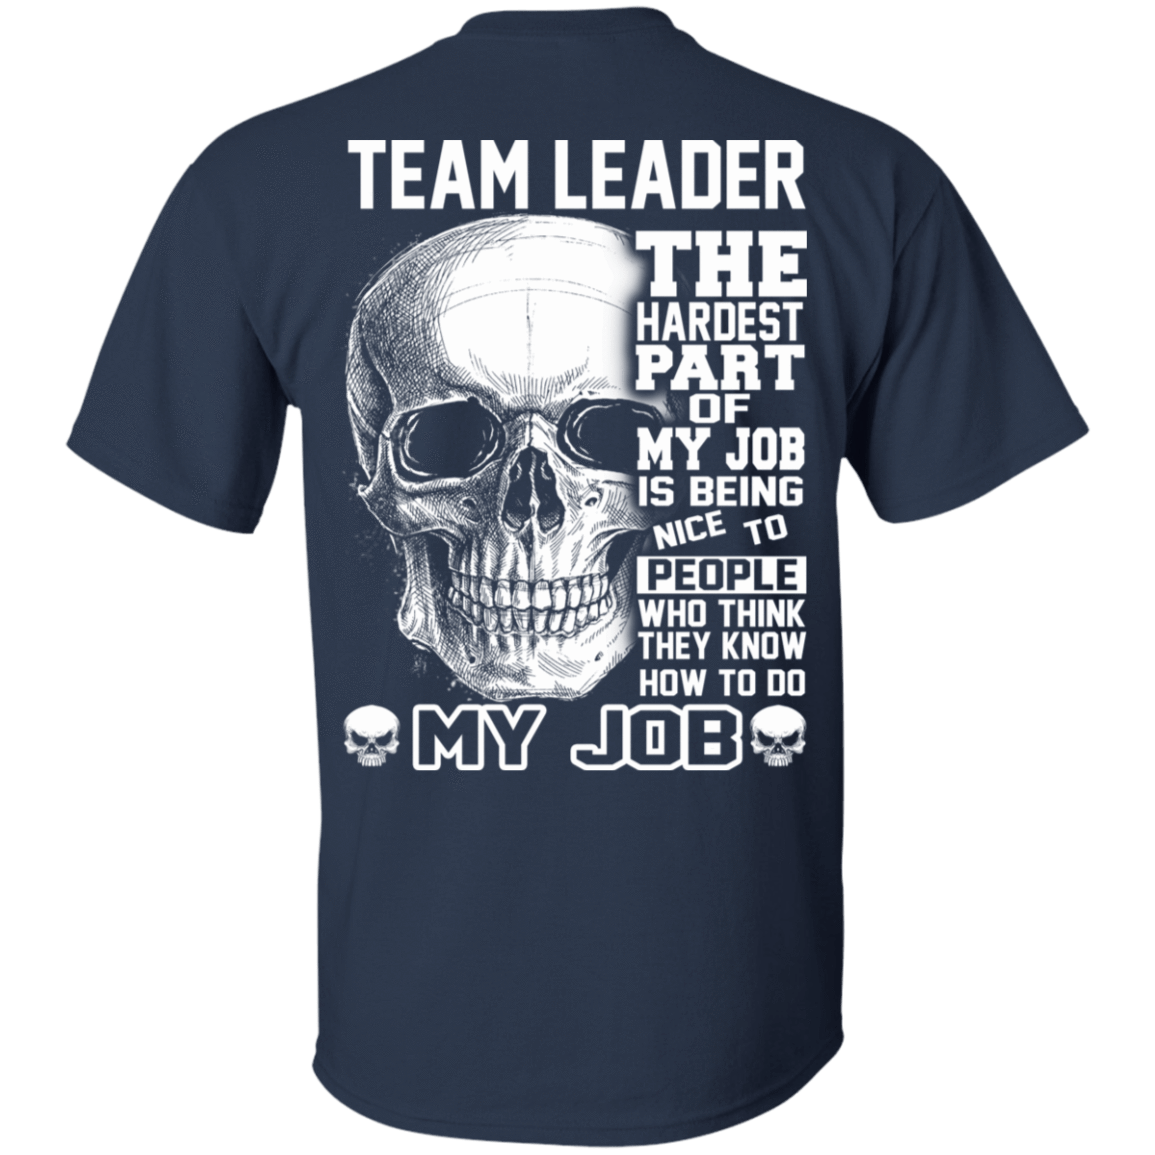 Team Leader The Hardest Part Of My Job 22-111-71609203-250 - Tee Ript